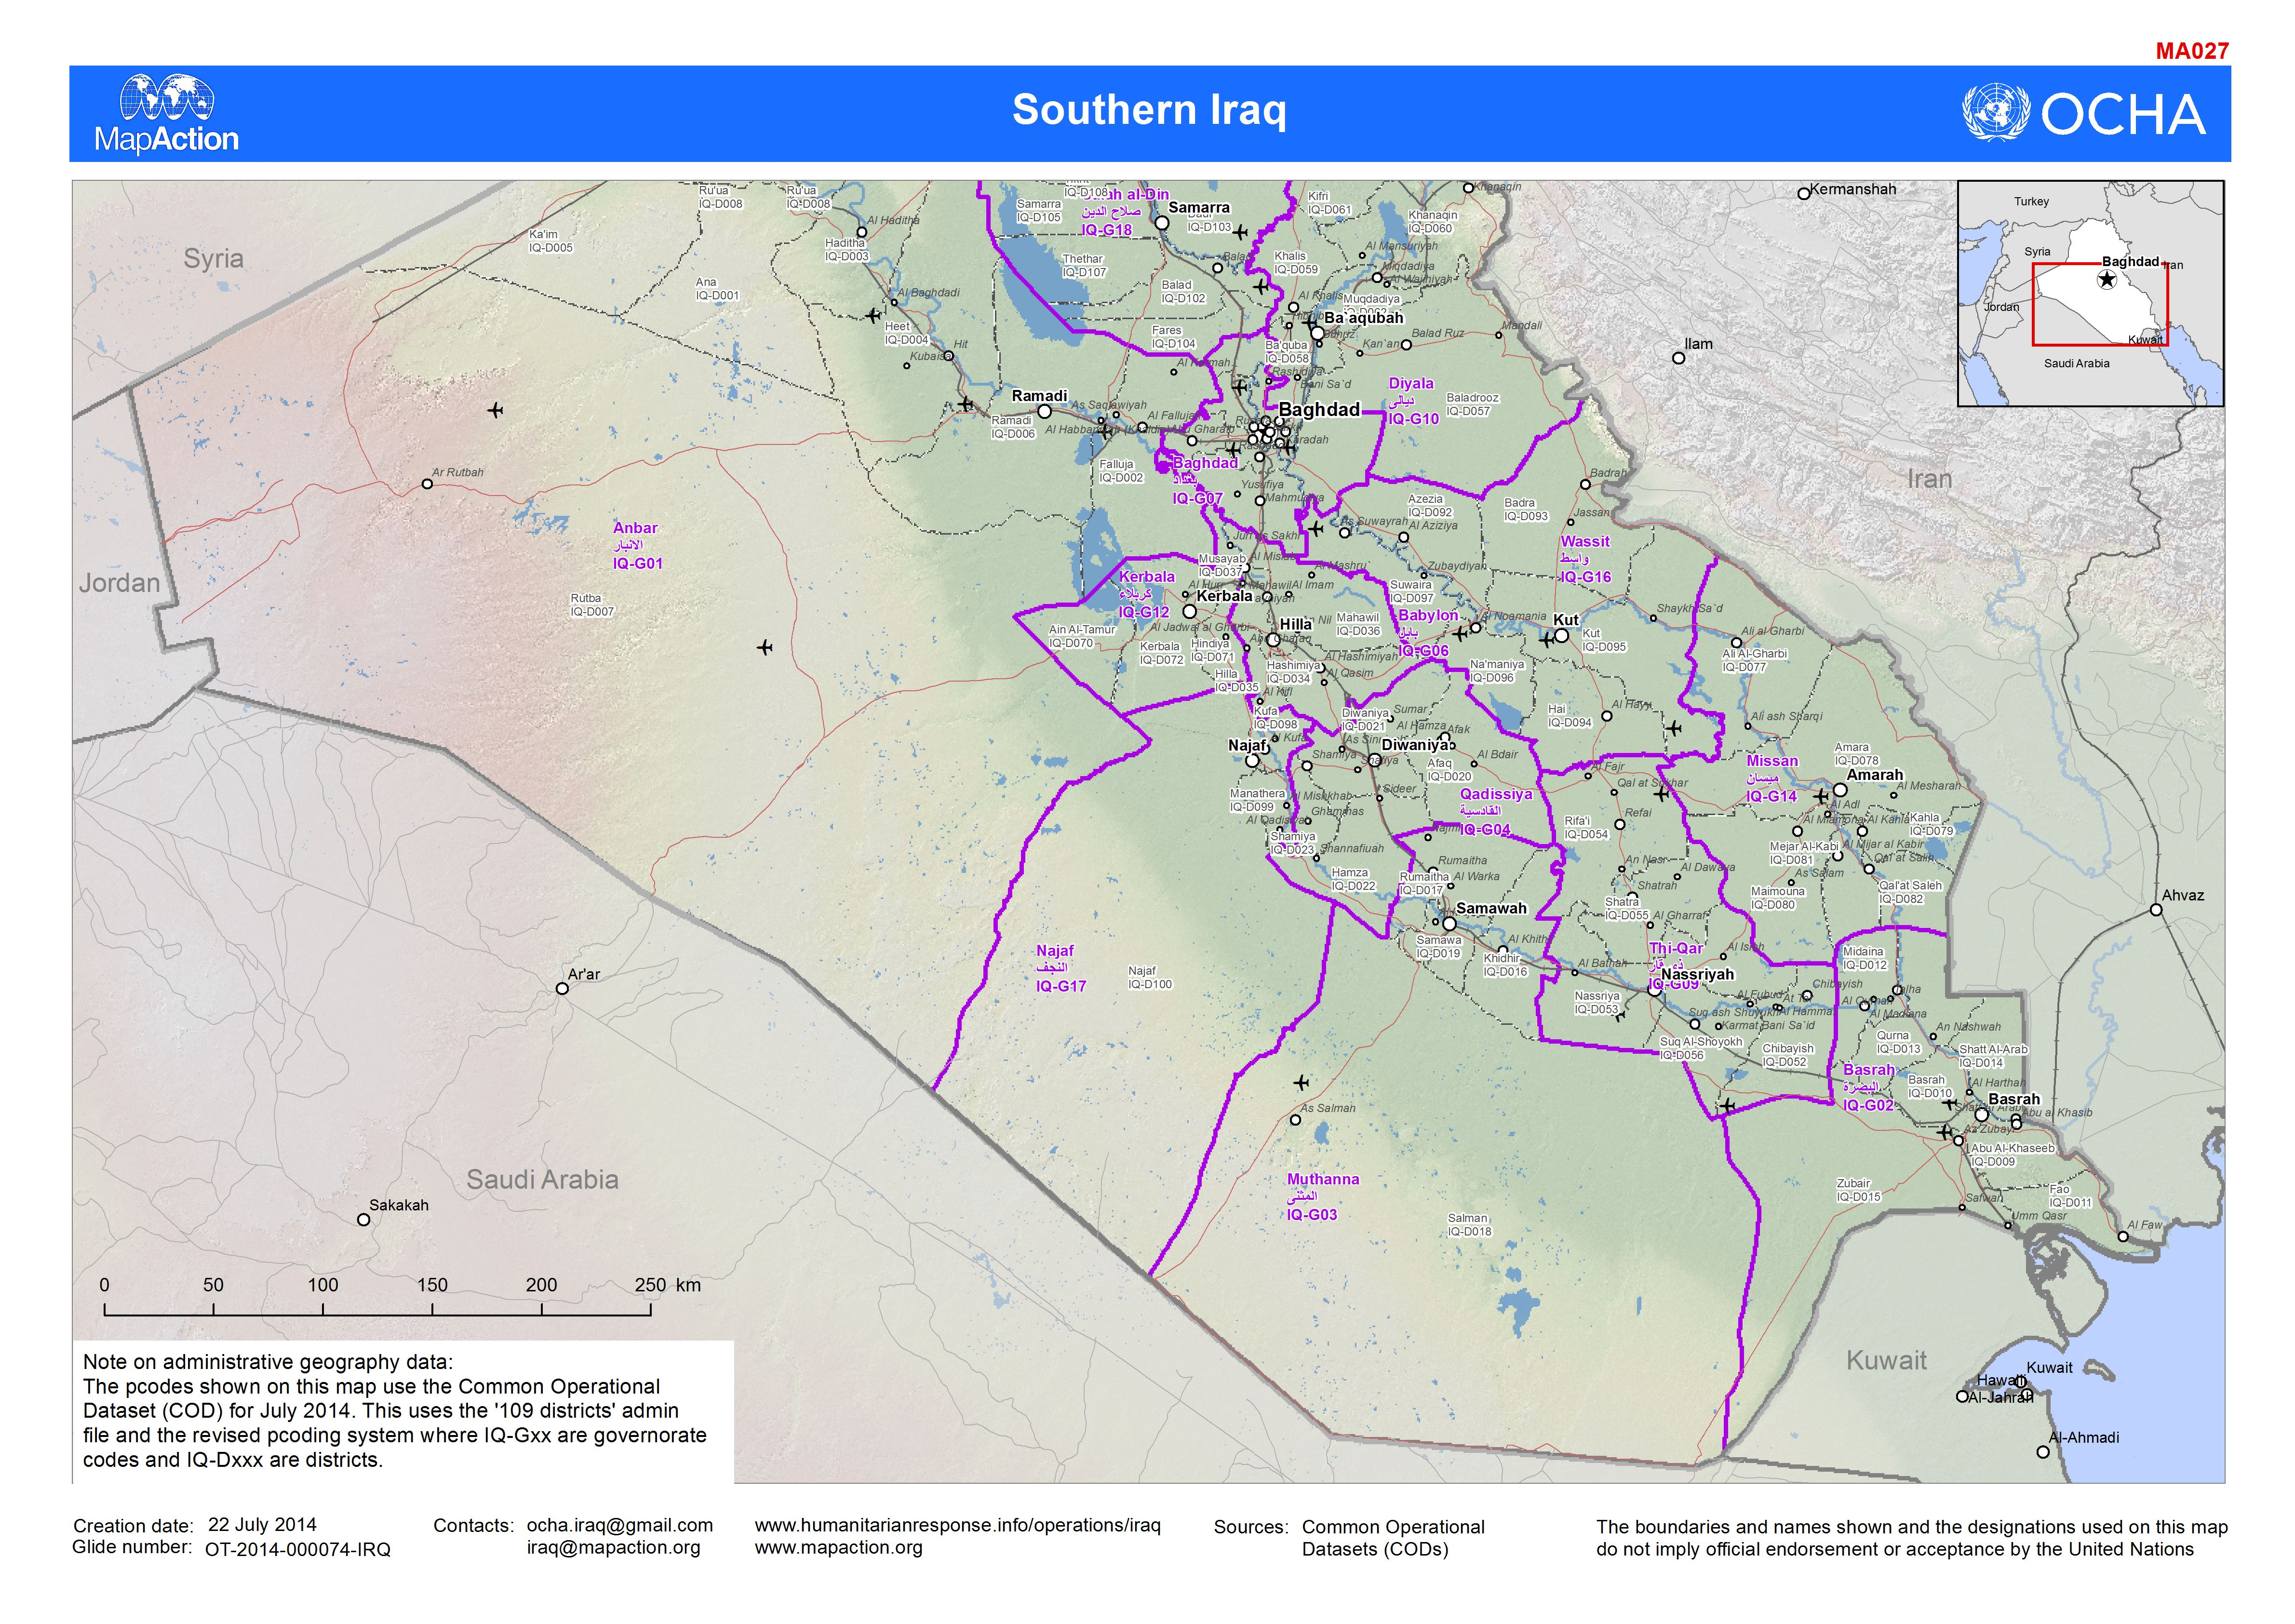 Iraq conflict, June 2014 - MapAction